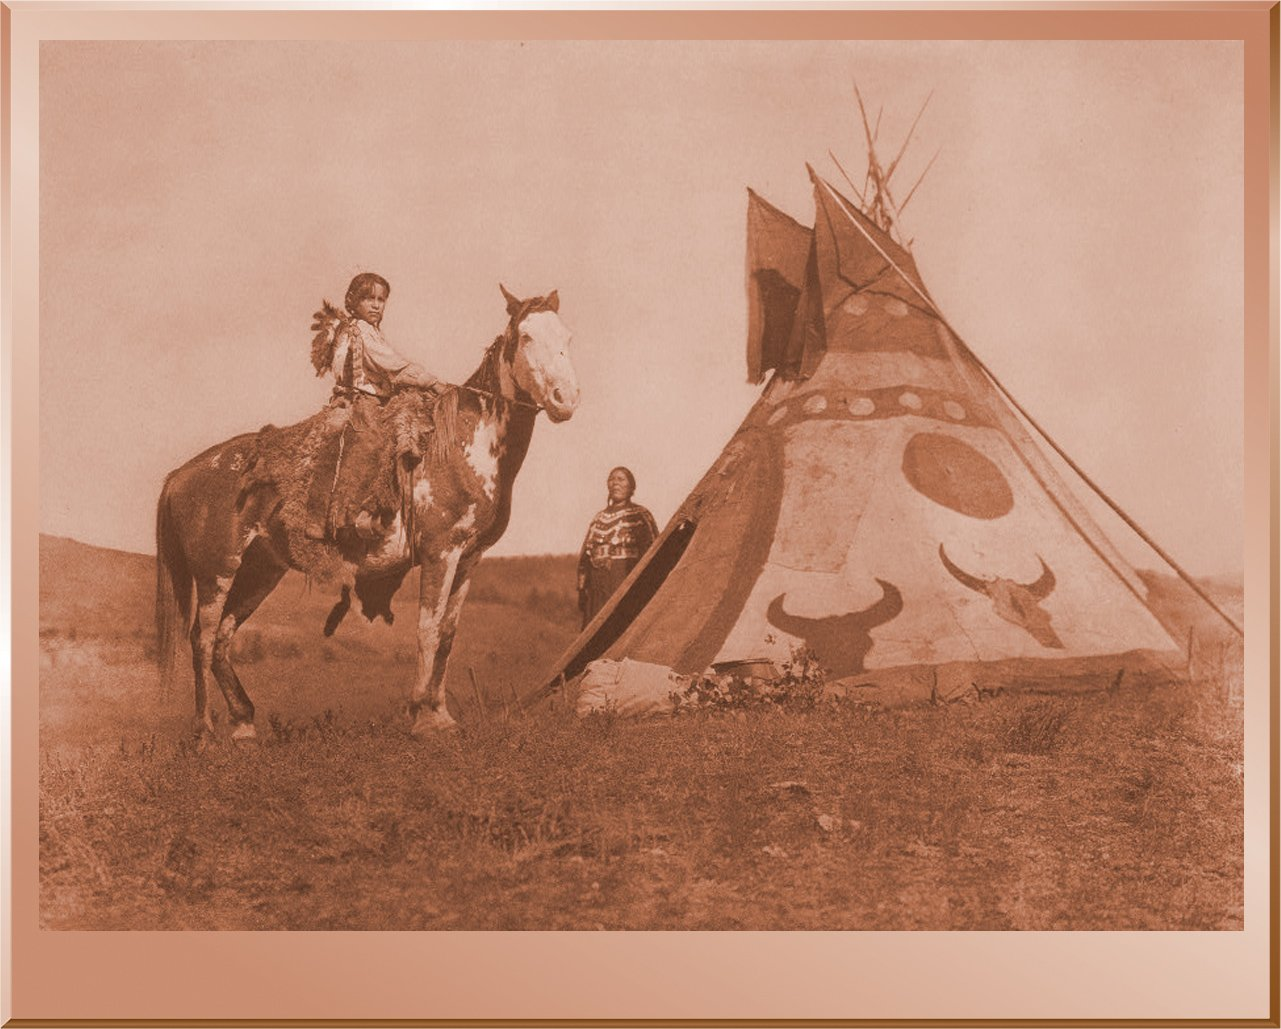 A Painted Tipi - Assiniboin